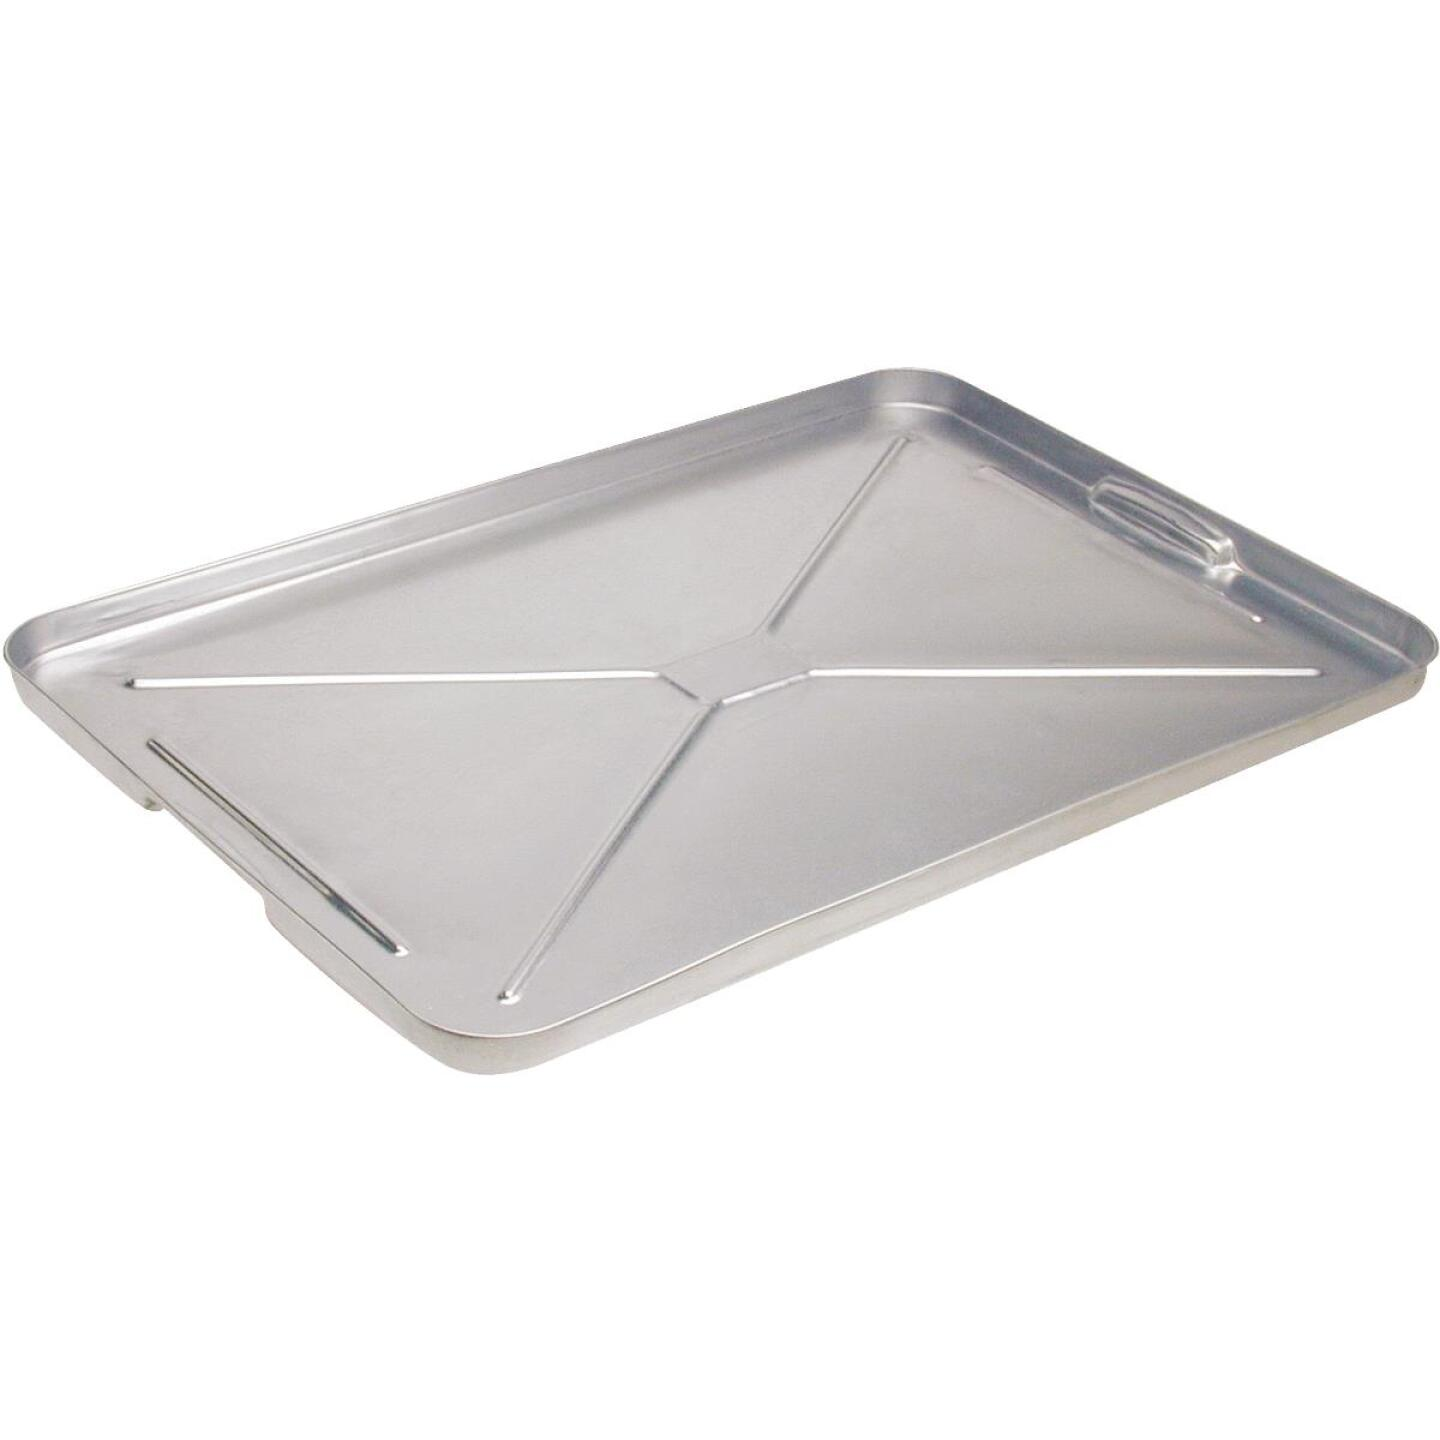 "Plews Lubrimatic 16"" x 25"" Galvanized Metal Auto Drip Pan Image 1"